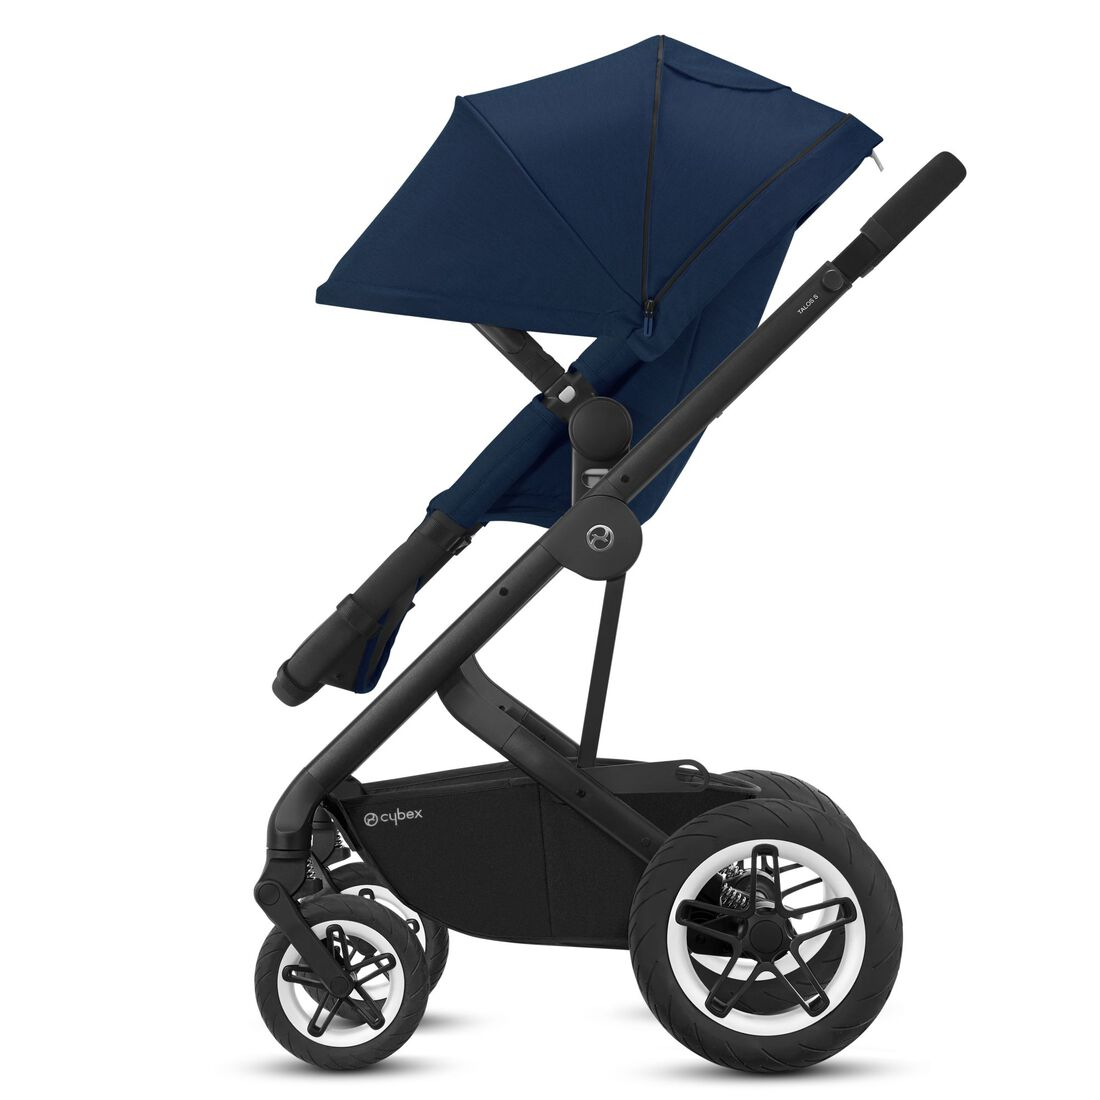 CYBEX Talos S 2-in-1 - Navy Blue in Navy Blue large Bild 5